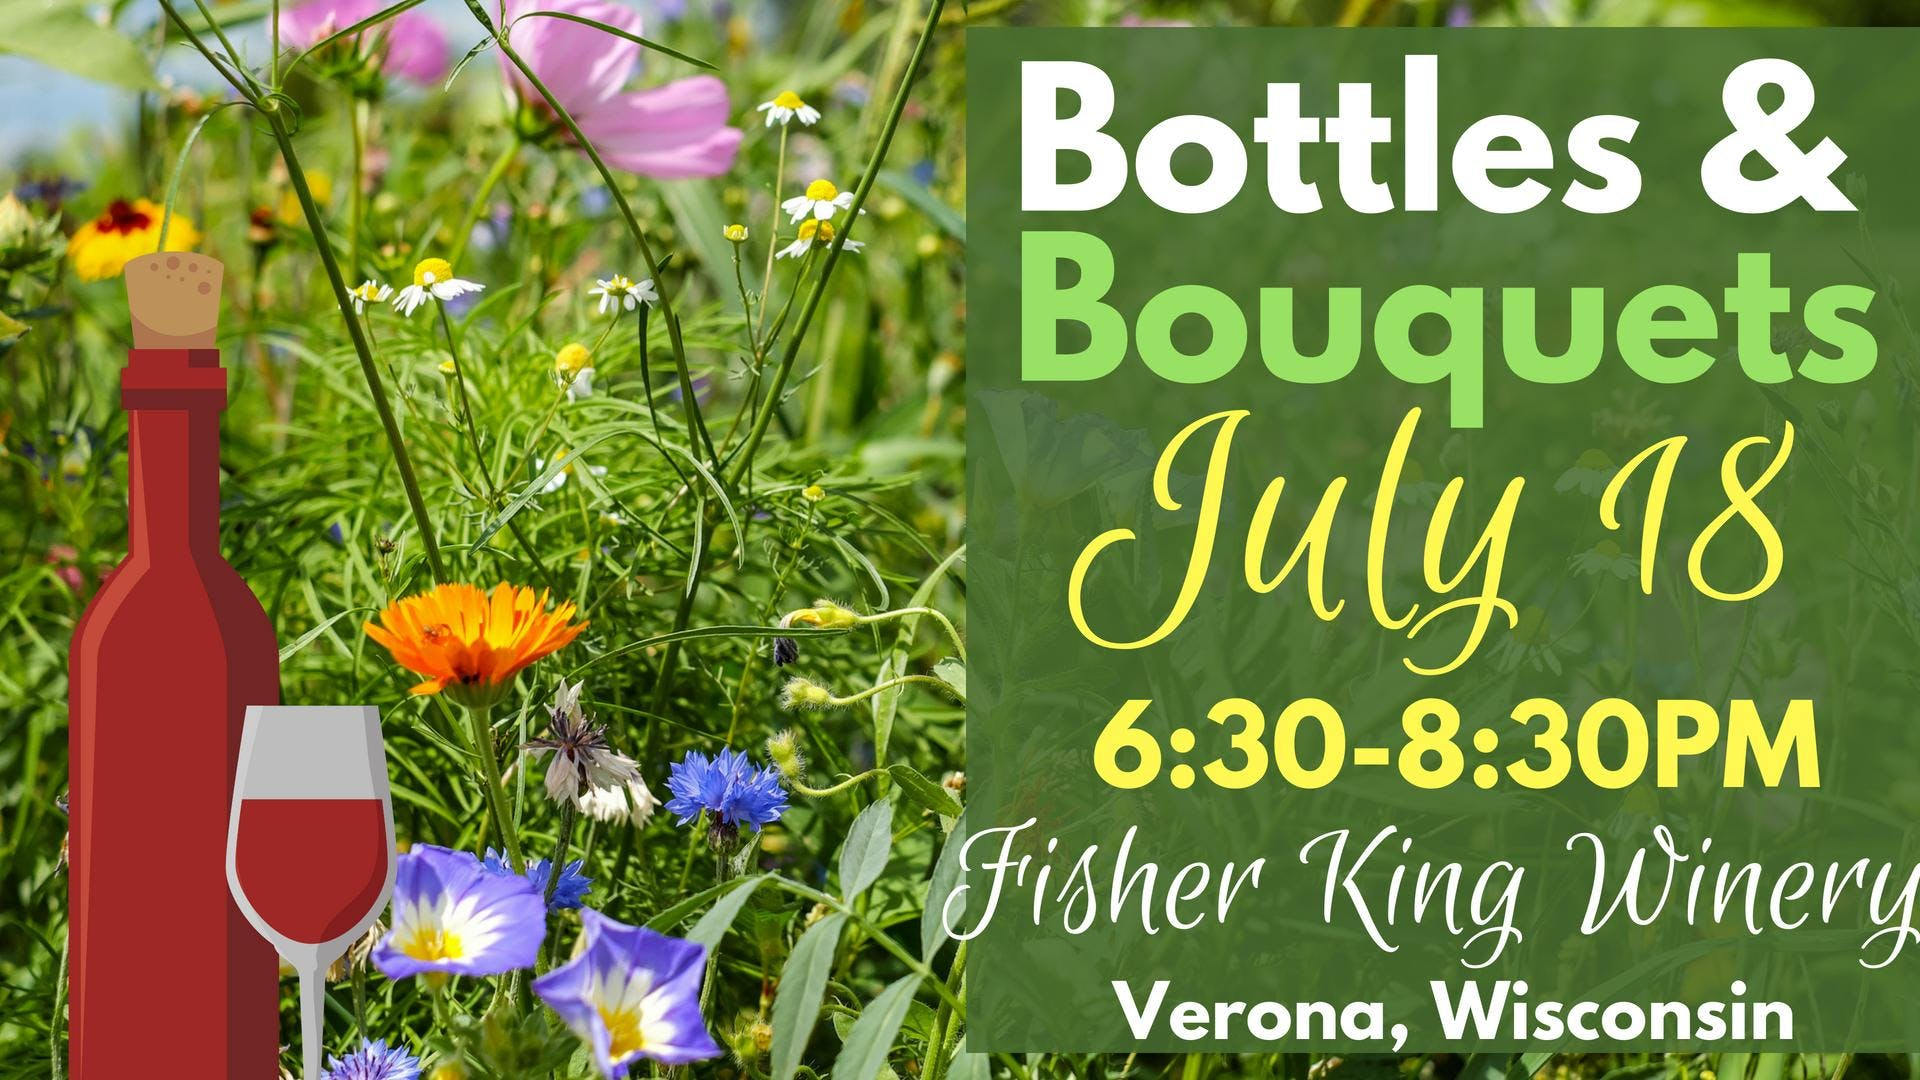 Fisher King Winery - Health-wellness Events